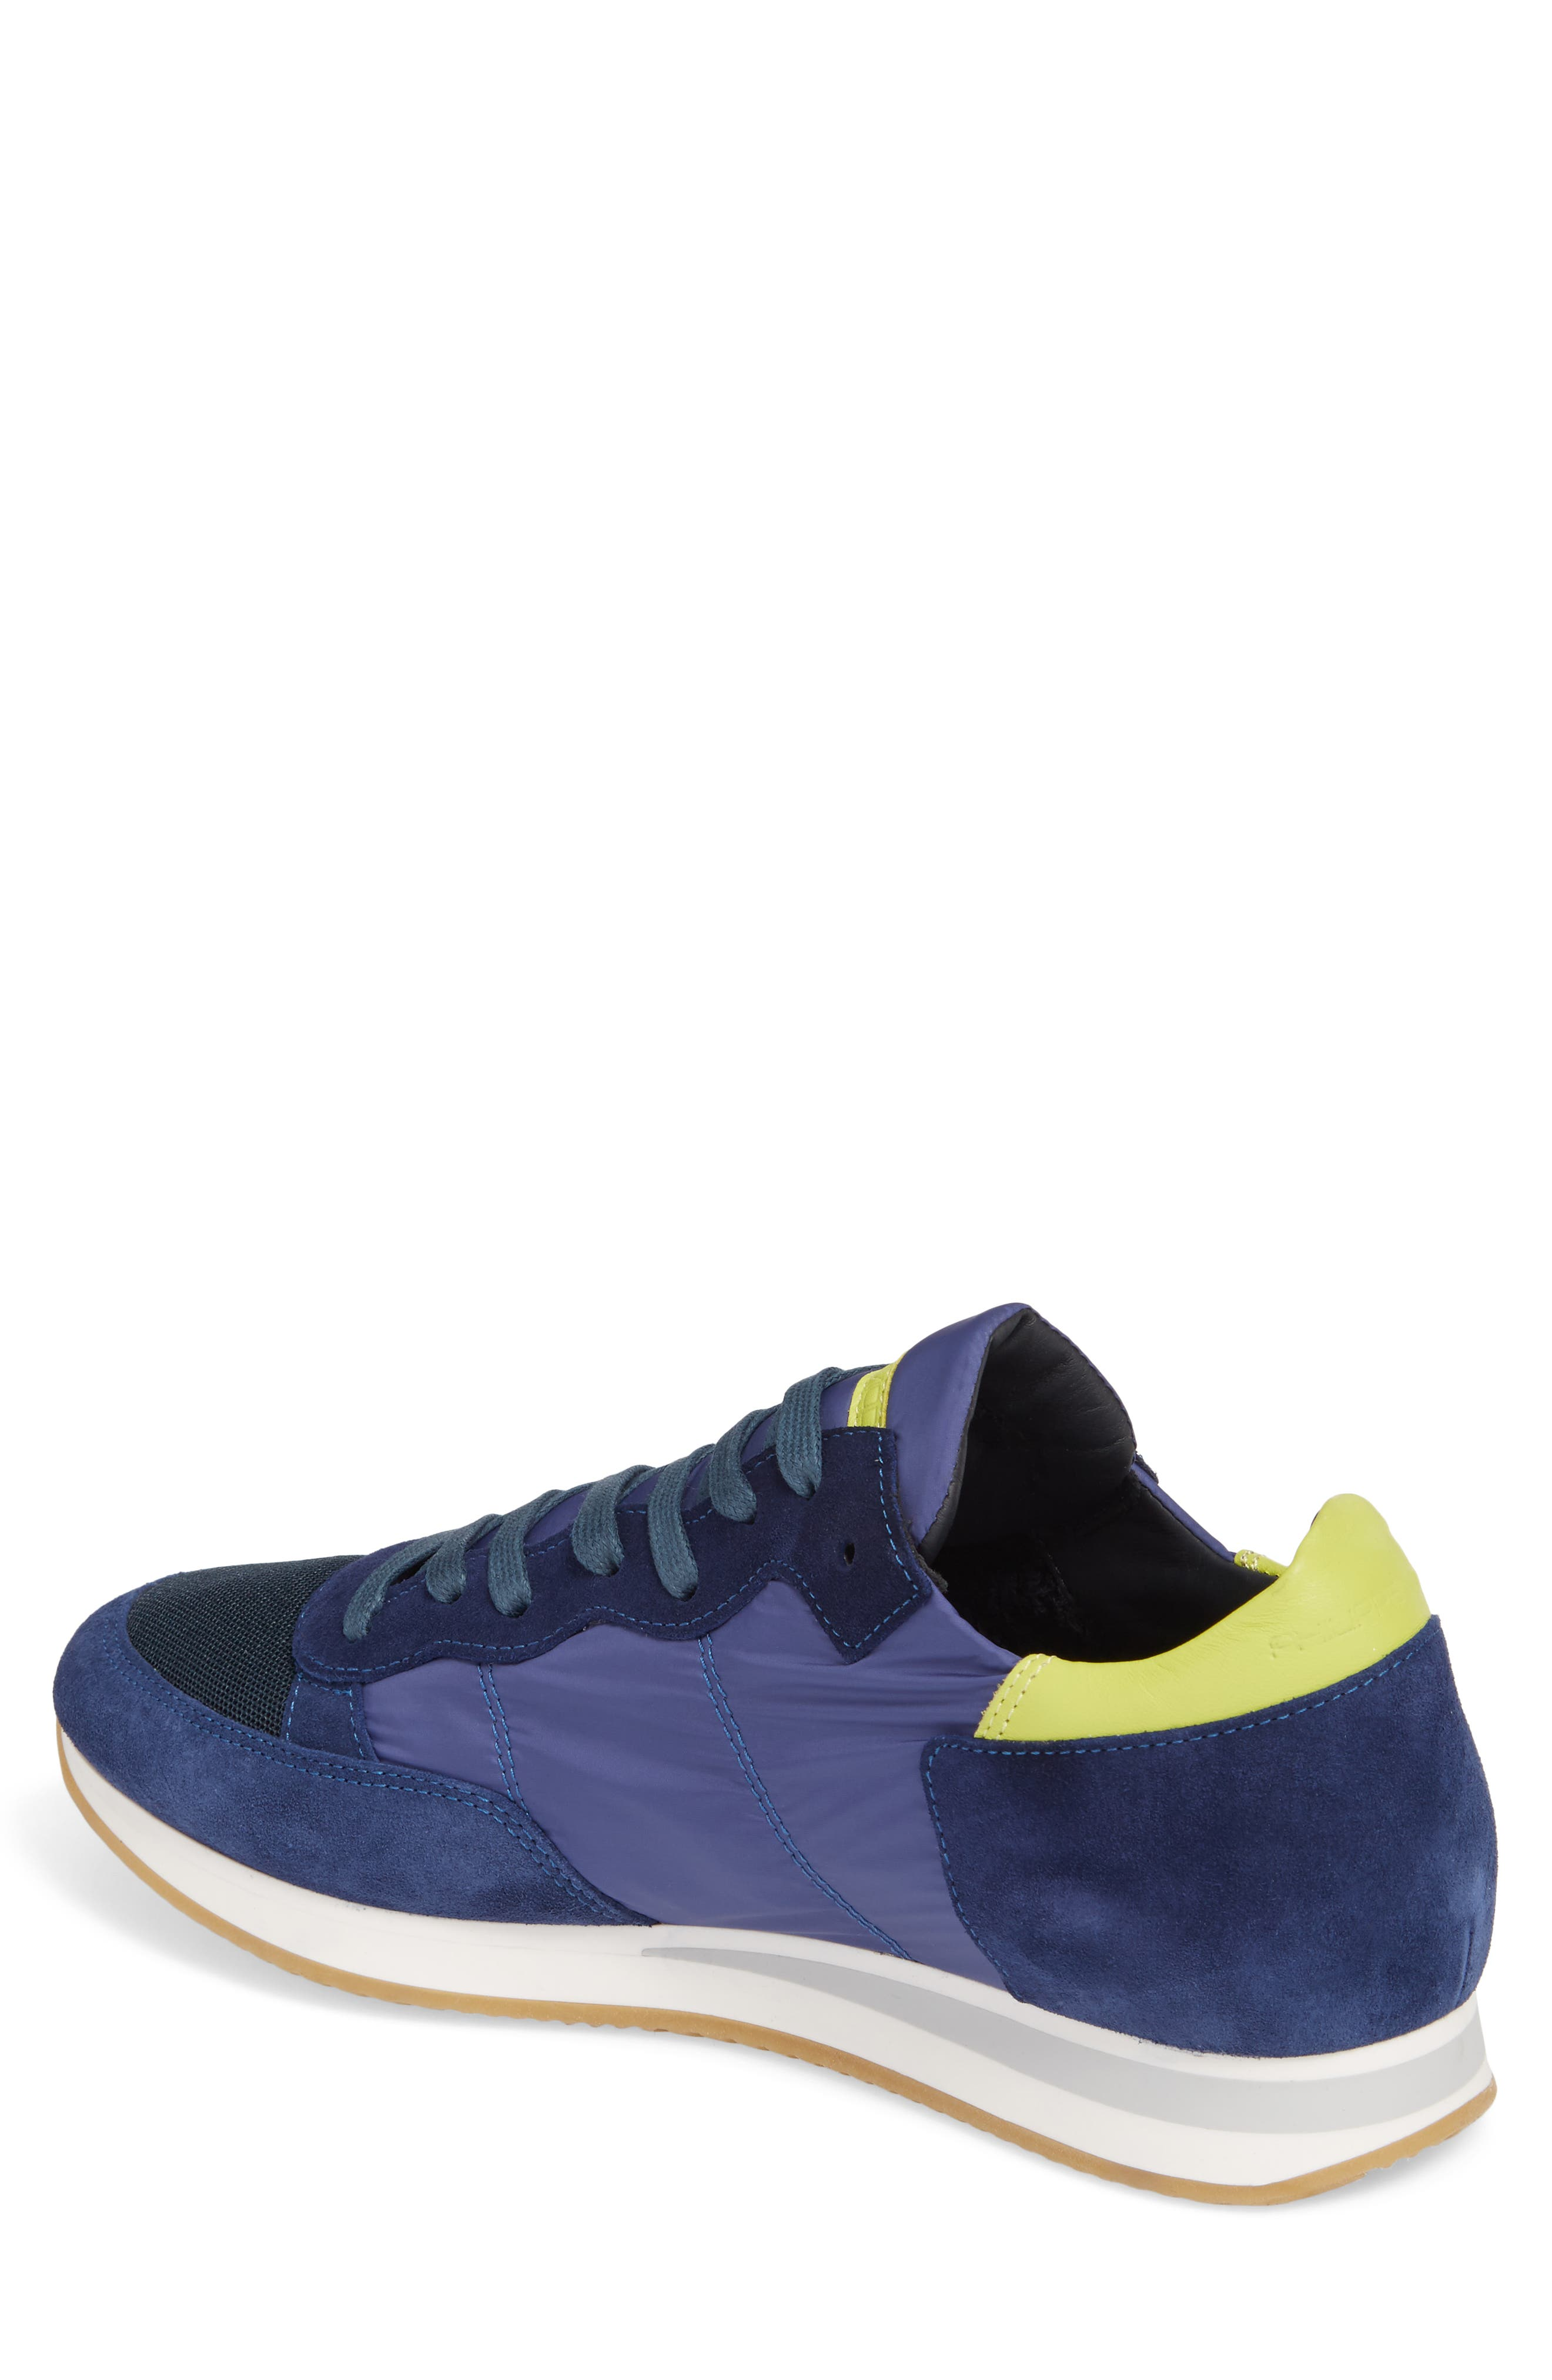 Tropez Low Top Sneaker,                             Alternate thumbnail 2, color,                             430